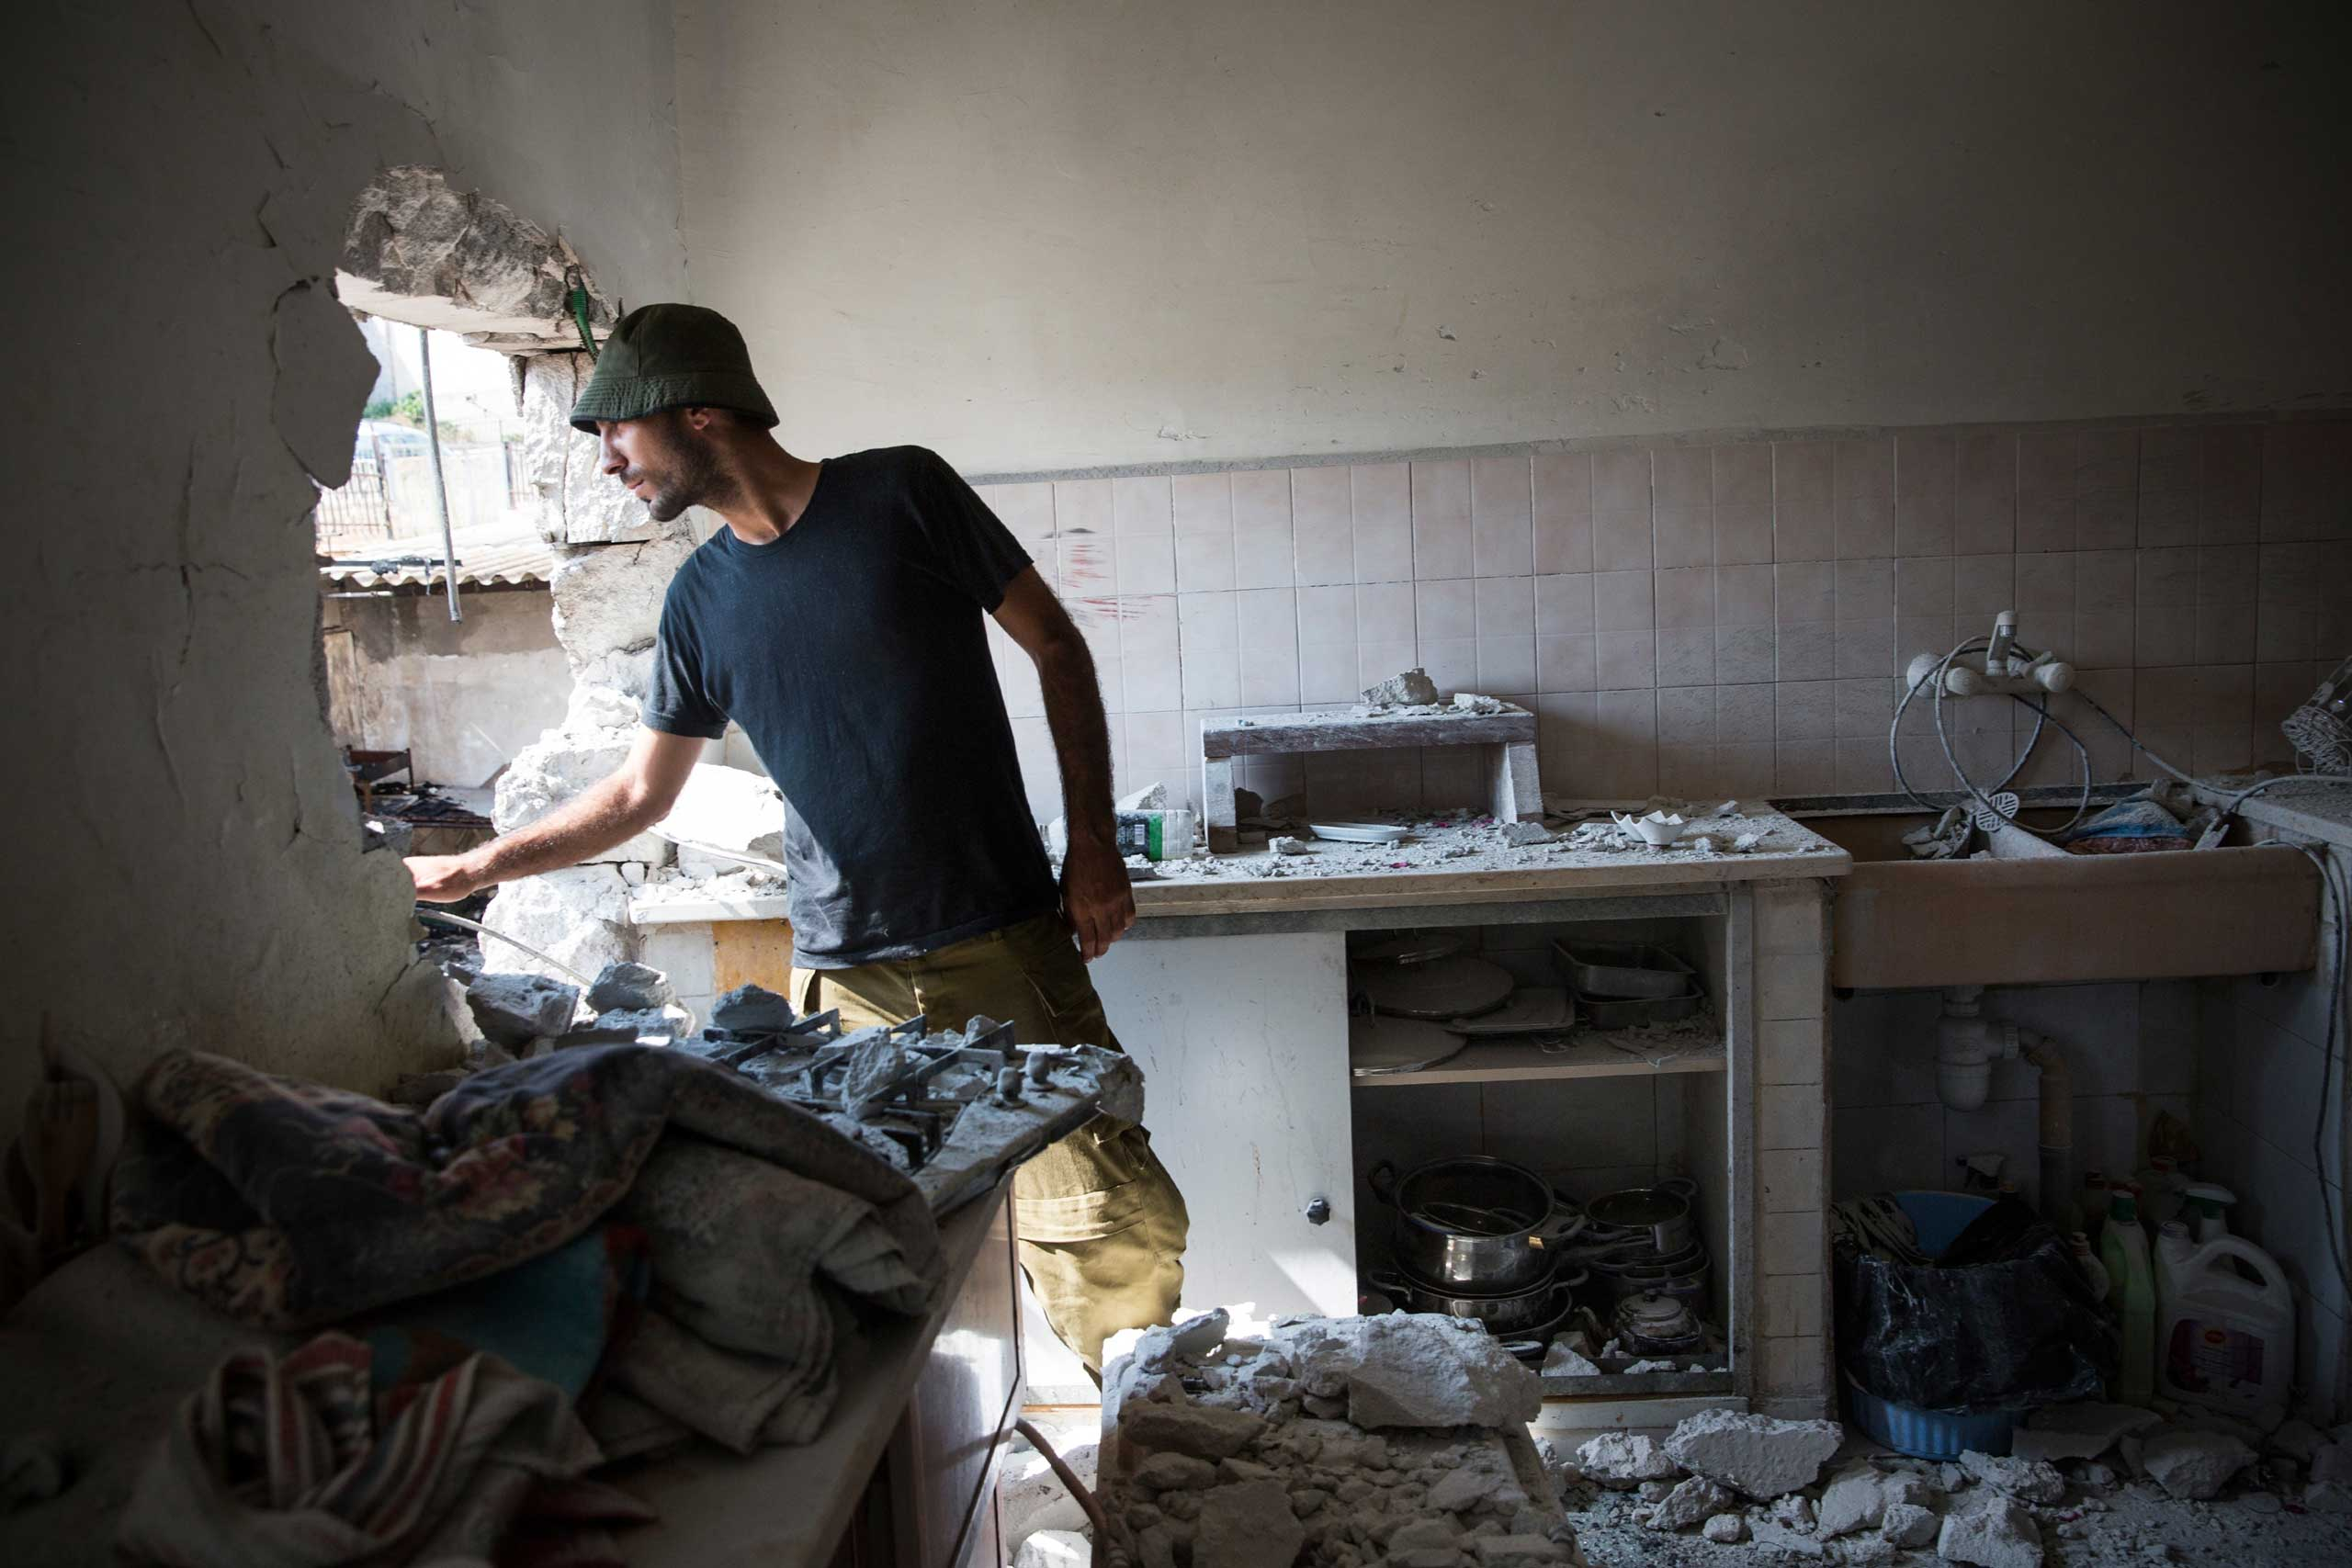 An Israeli soldier inspects a home allegedly hit by a Hamas rocket in Sderot, Israel, July 21, 2014.